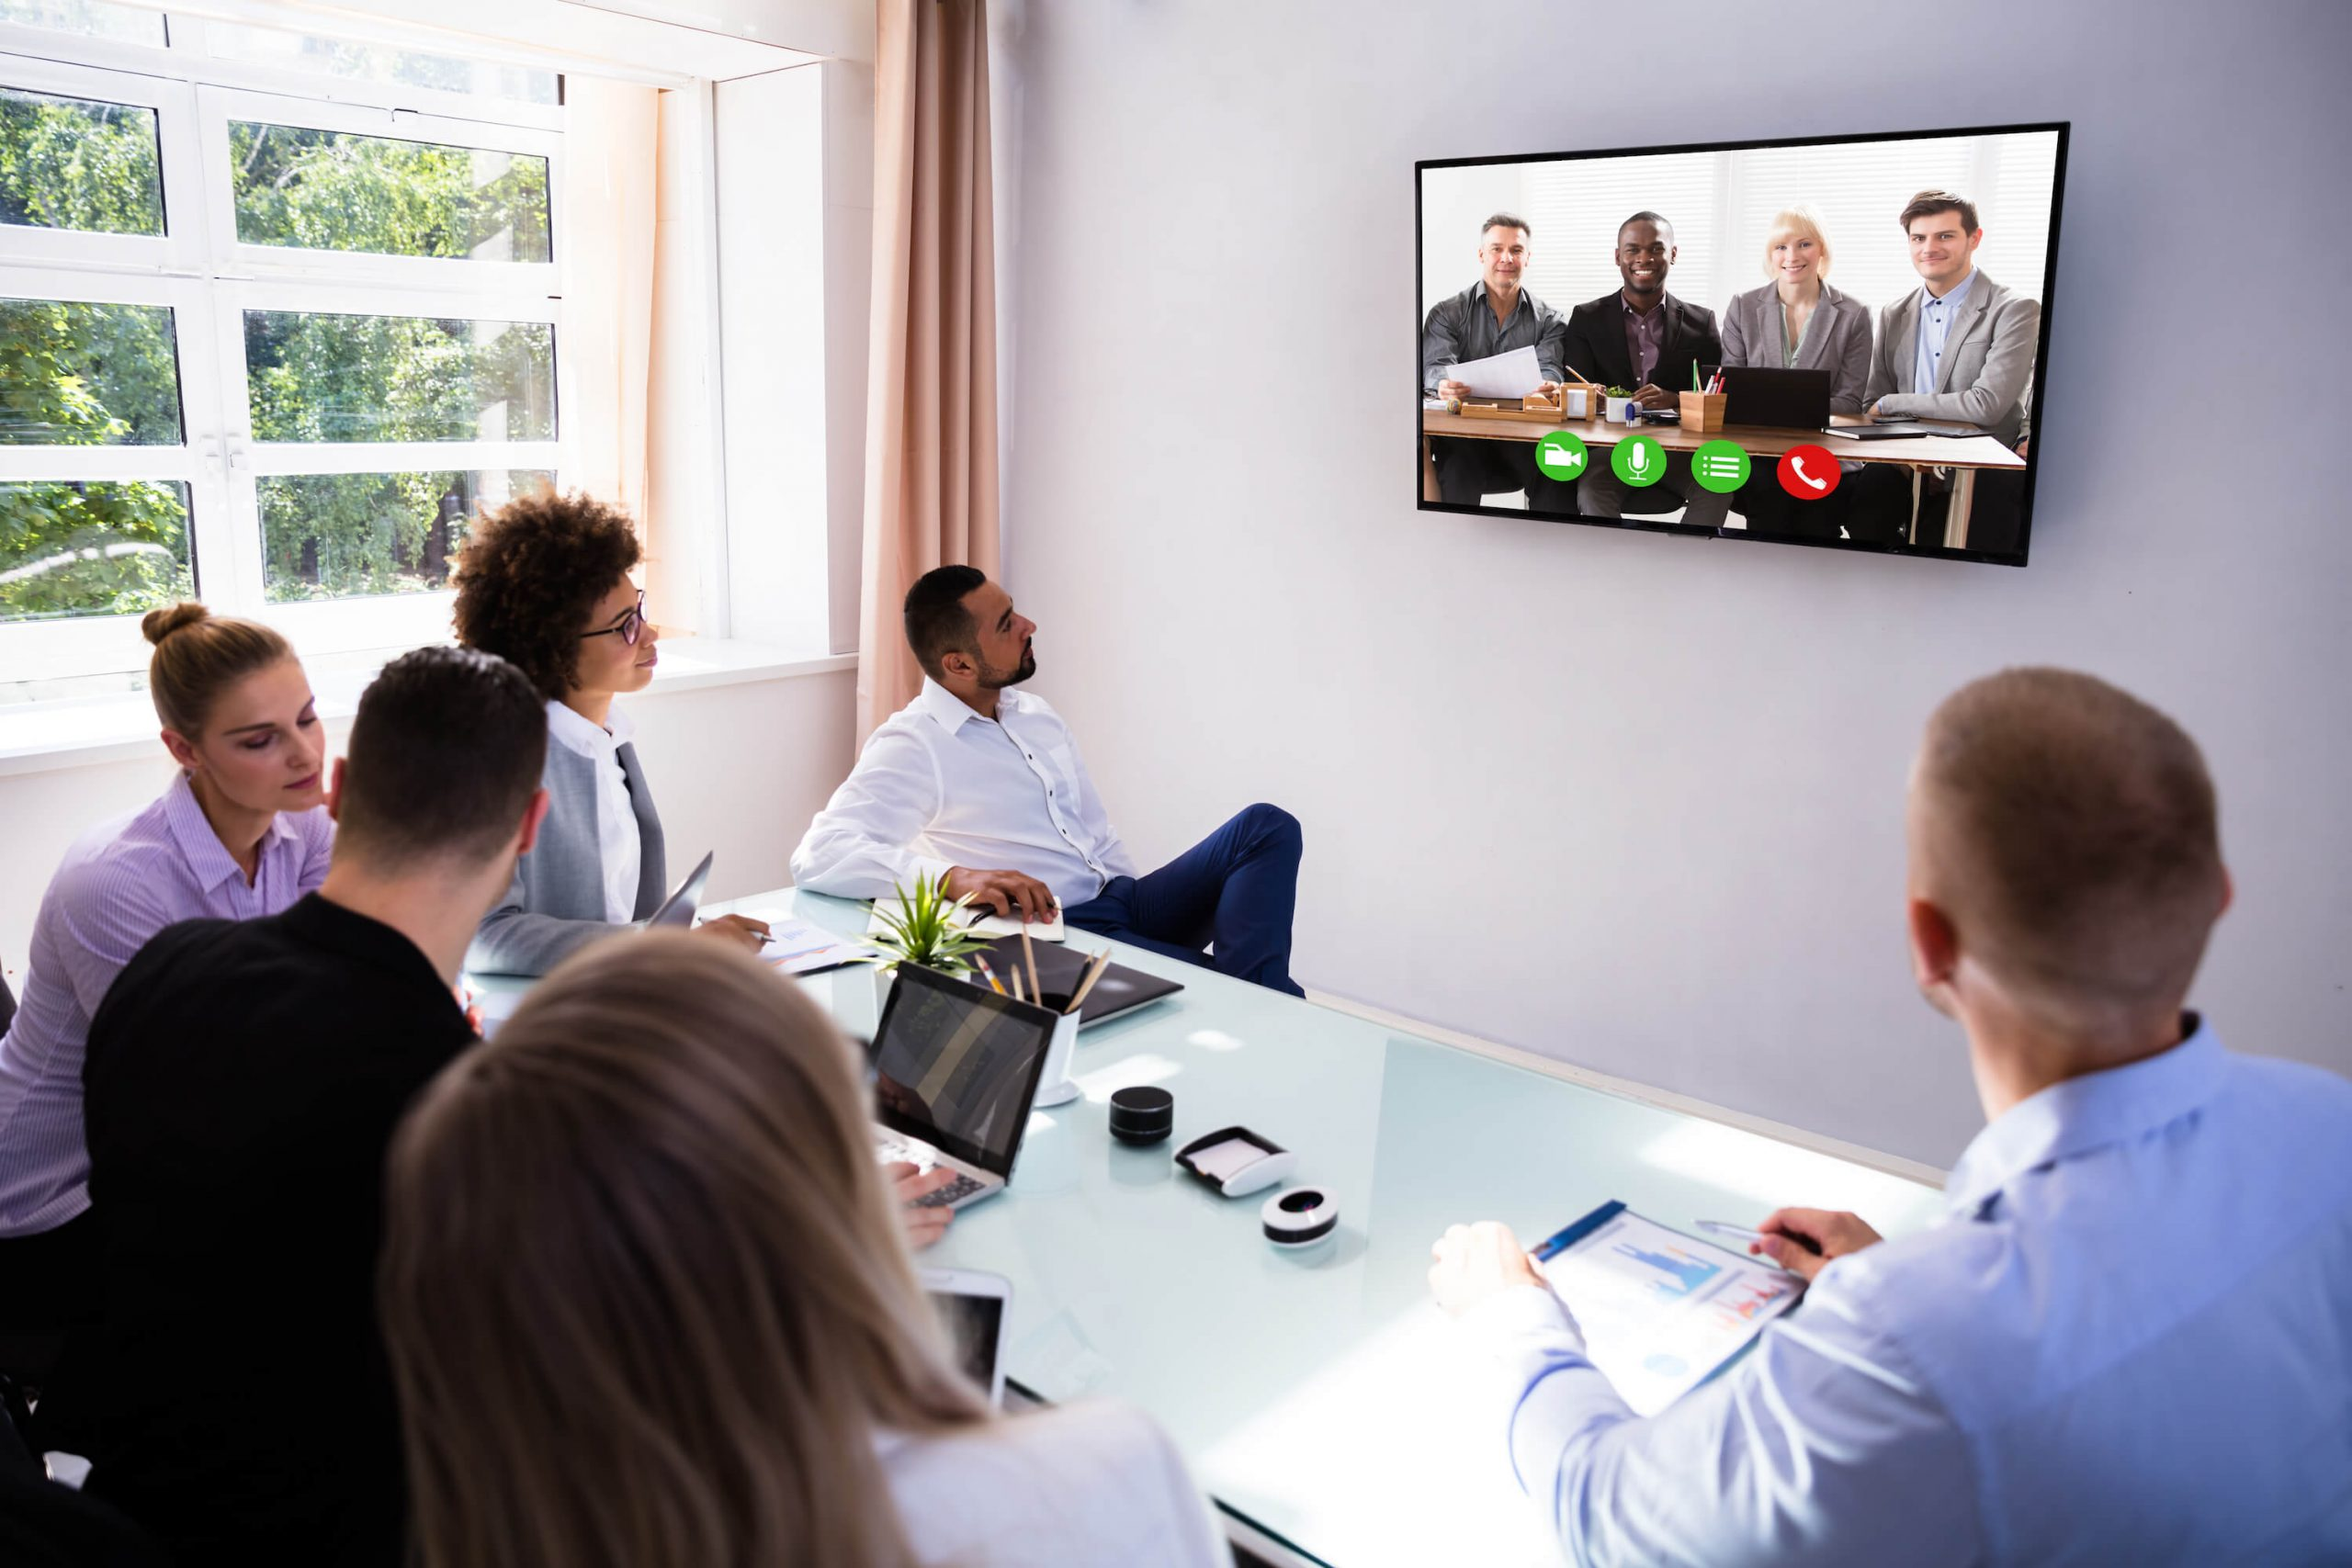 3 Top Tips Before Making Video Conference Calls